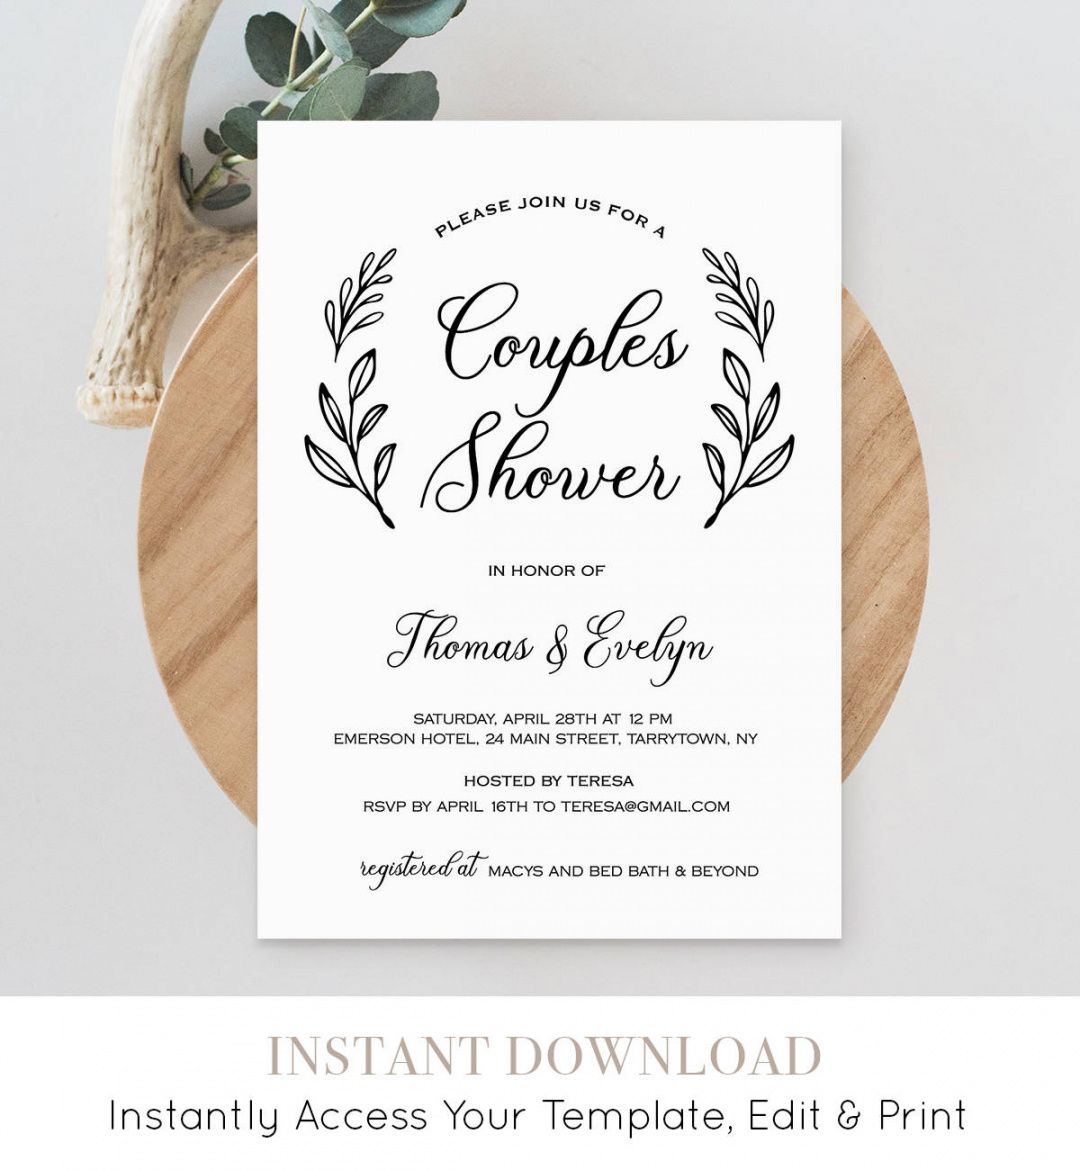 free couples shower invitation template printable wedding bridal shower itinerary template